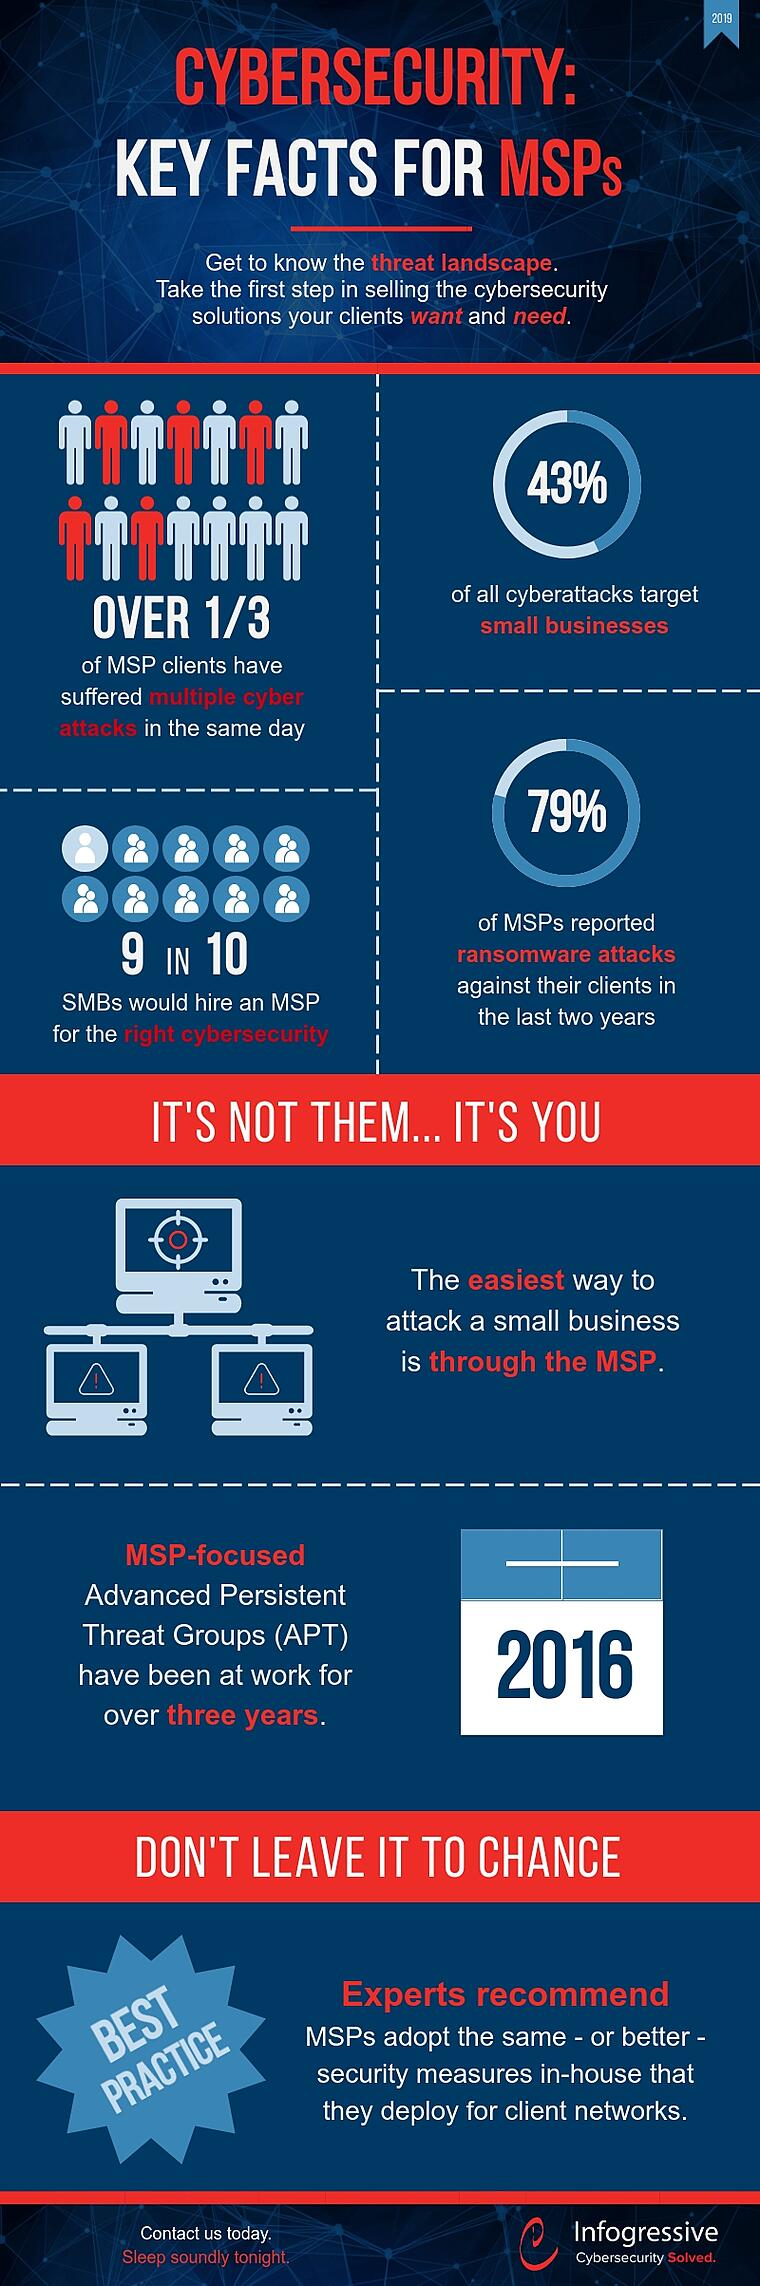 key cybersecurity statistics for MSPs